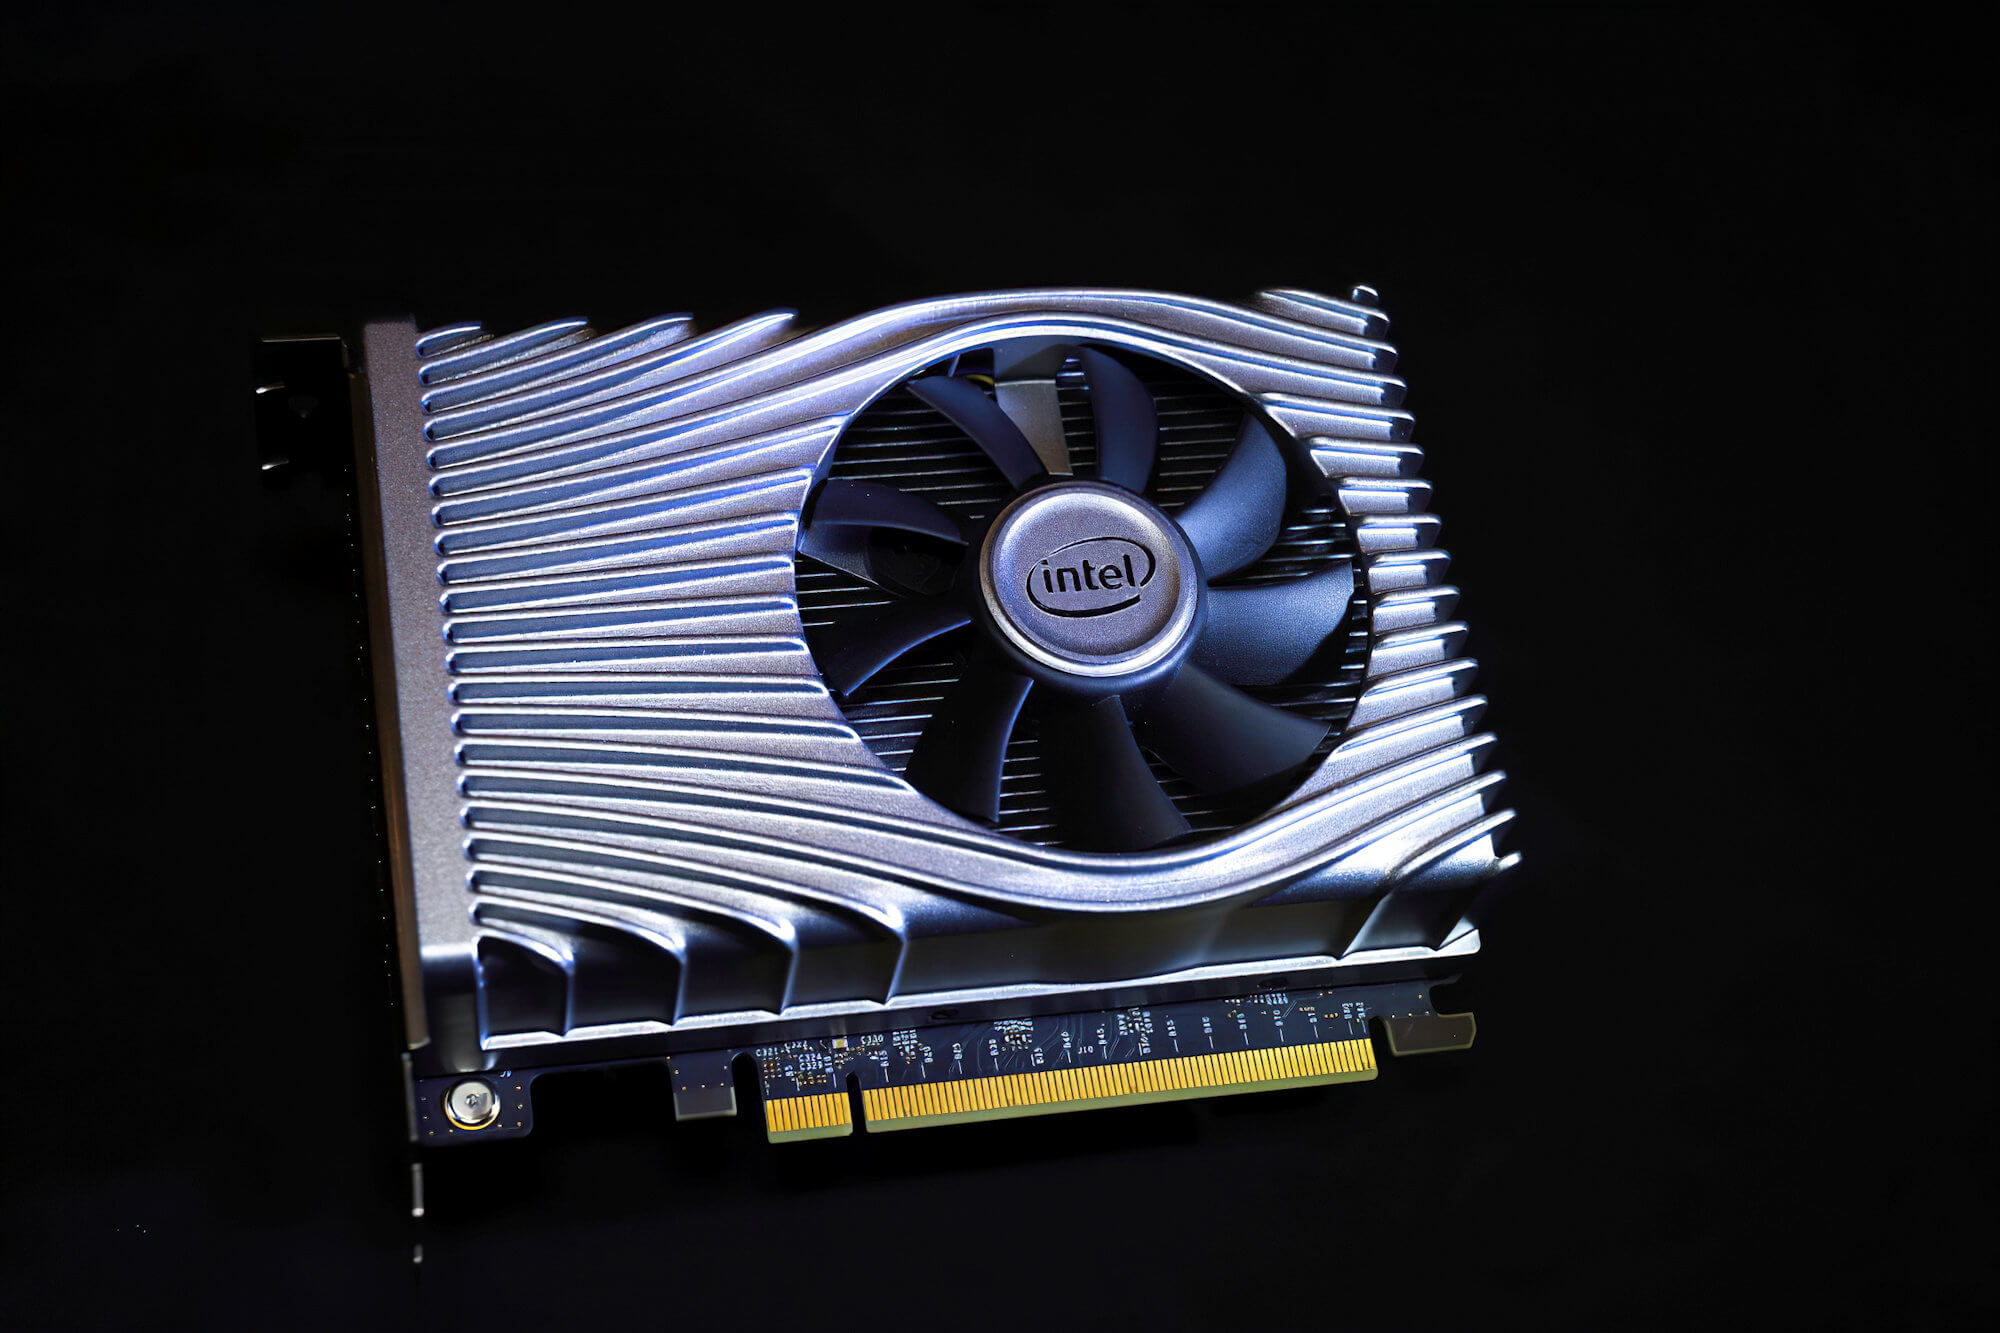 Intel won't benchmark GPUs with more than 768 shaders and 3GB memory